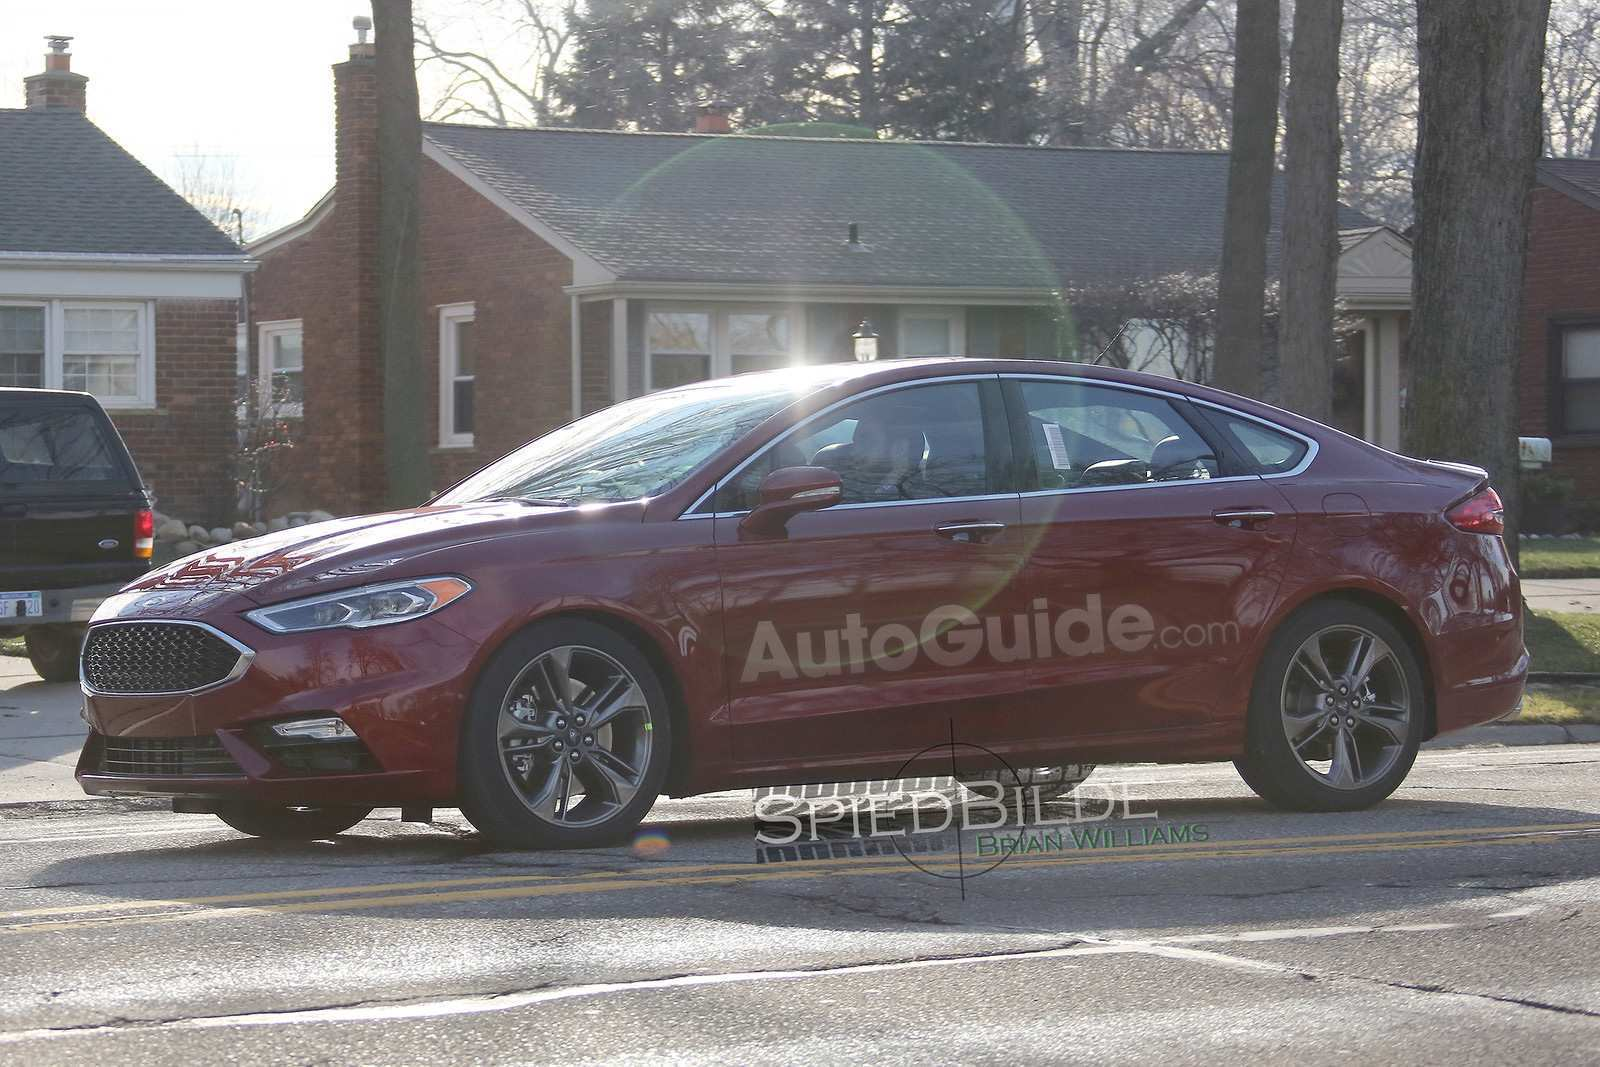 67 New 2019 The Spy Shots Ford Fusion Engine